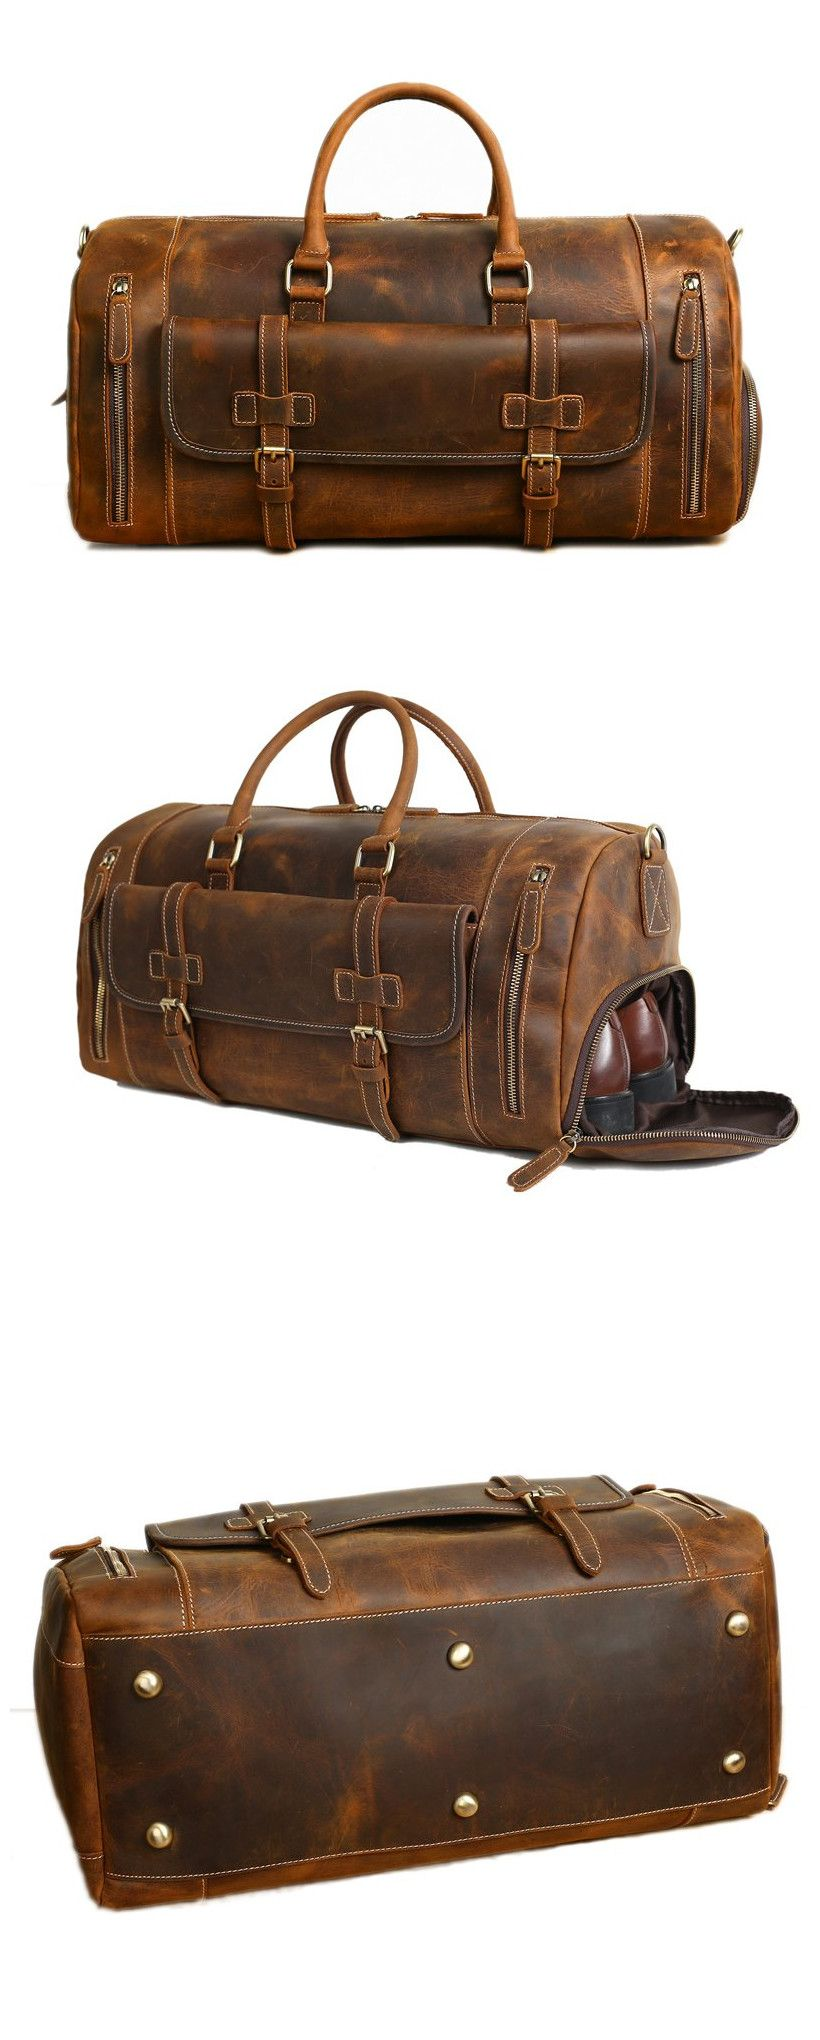 4e7f5e7036a Handmade Vintage Brown Leather Duffle Bag with Shoes Compartment, Travel Bag